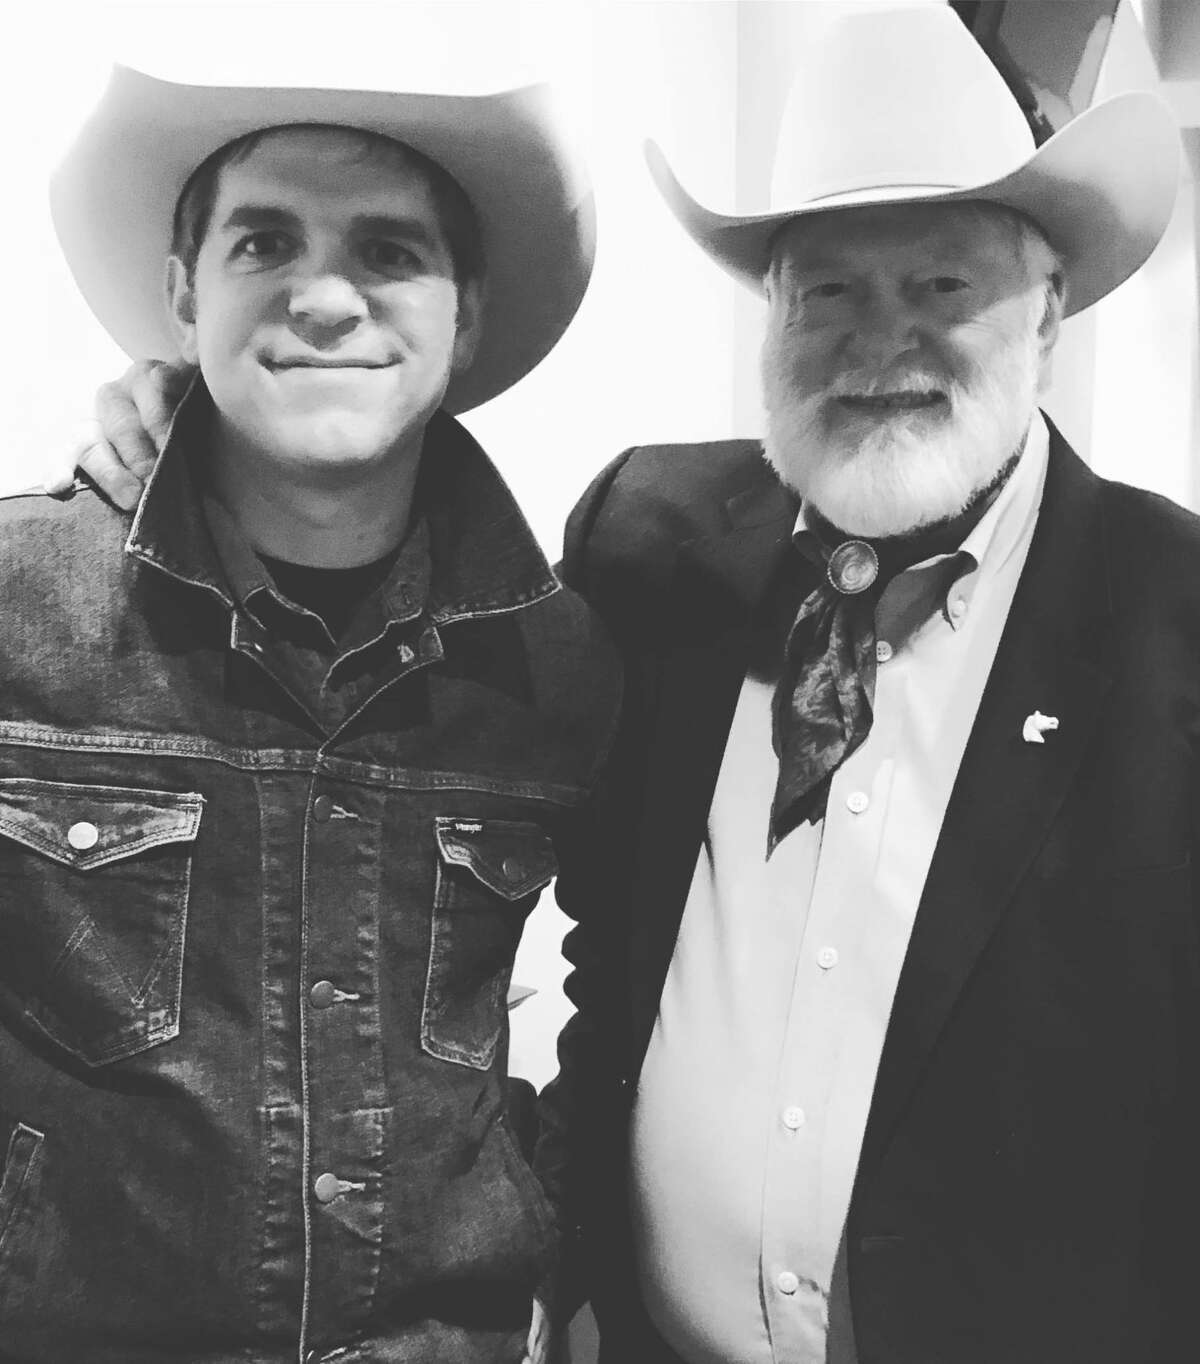 Red Steagall (right) will be the first guest of Andy Hedges' Cowboy Crossroad podcast that has now partnered with the National Ranching Heritage Center. The podcast launches on June 29.